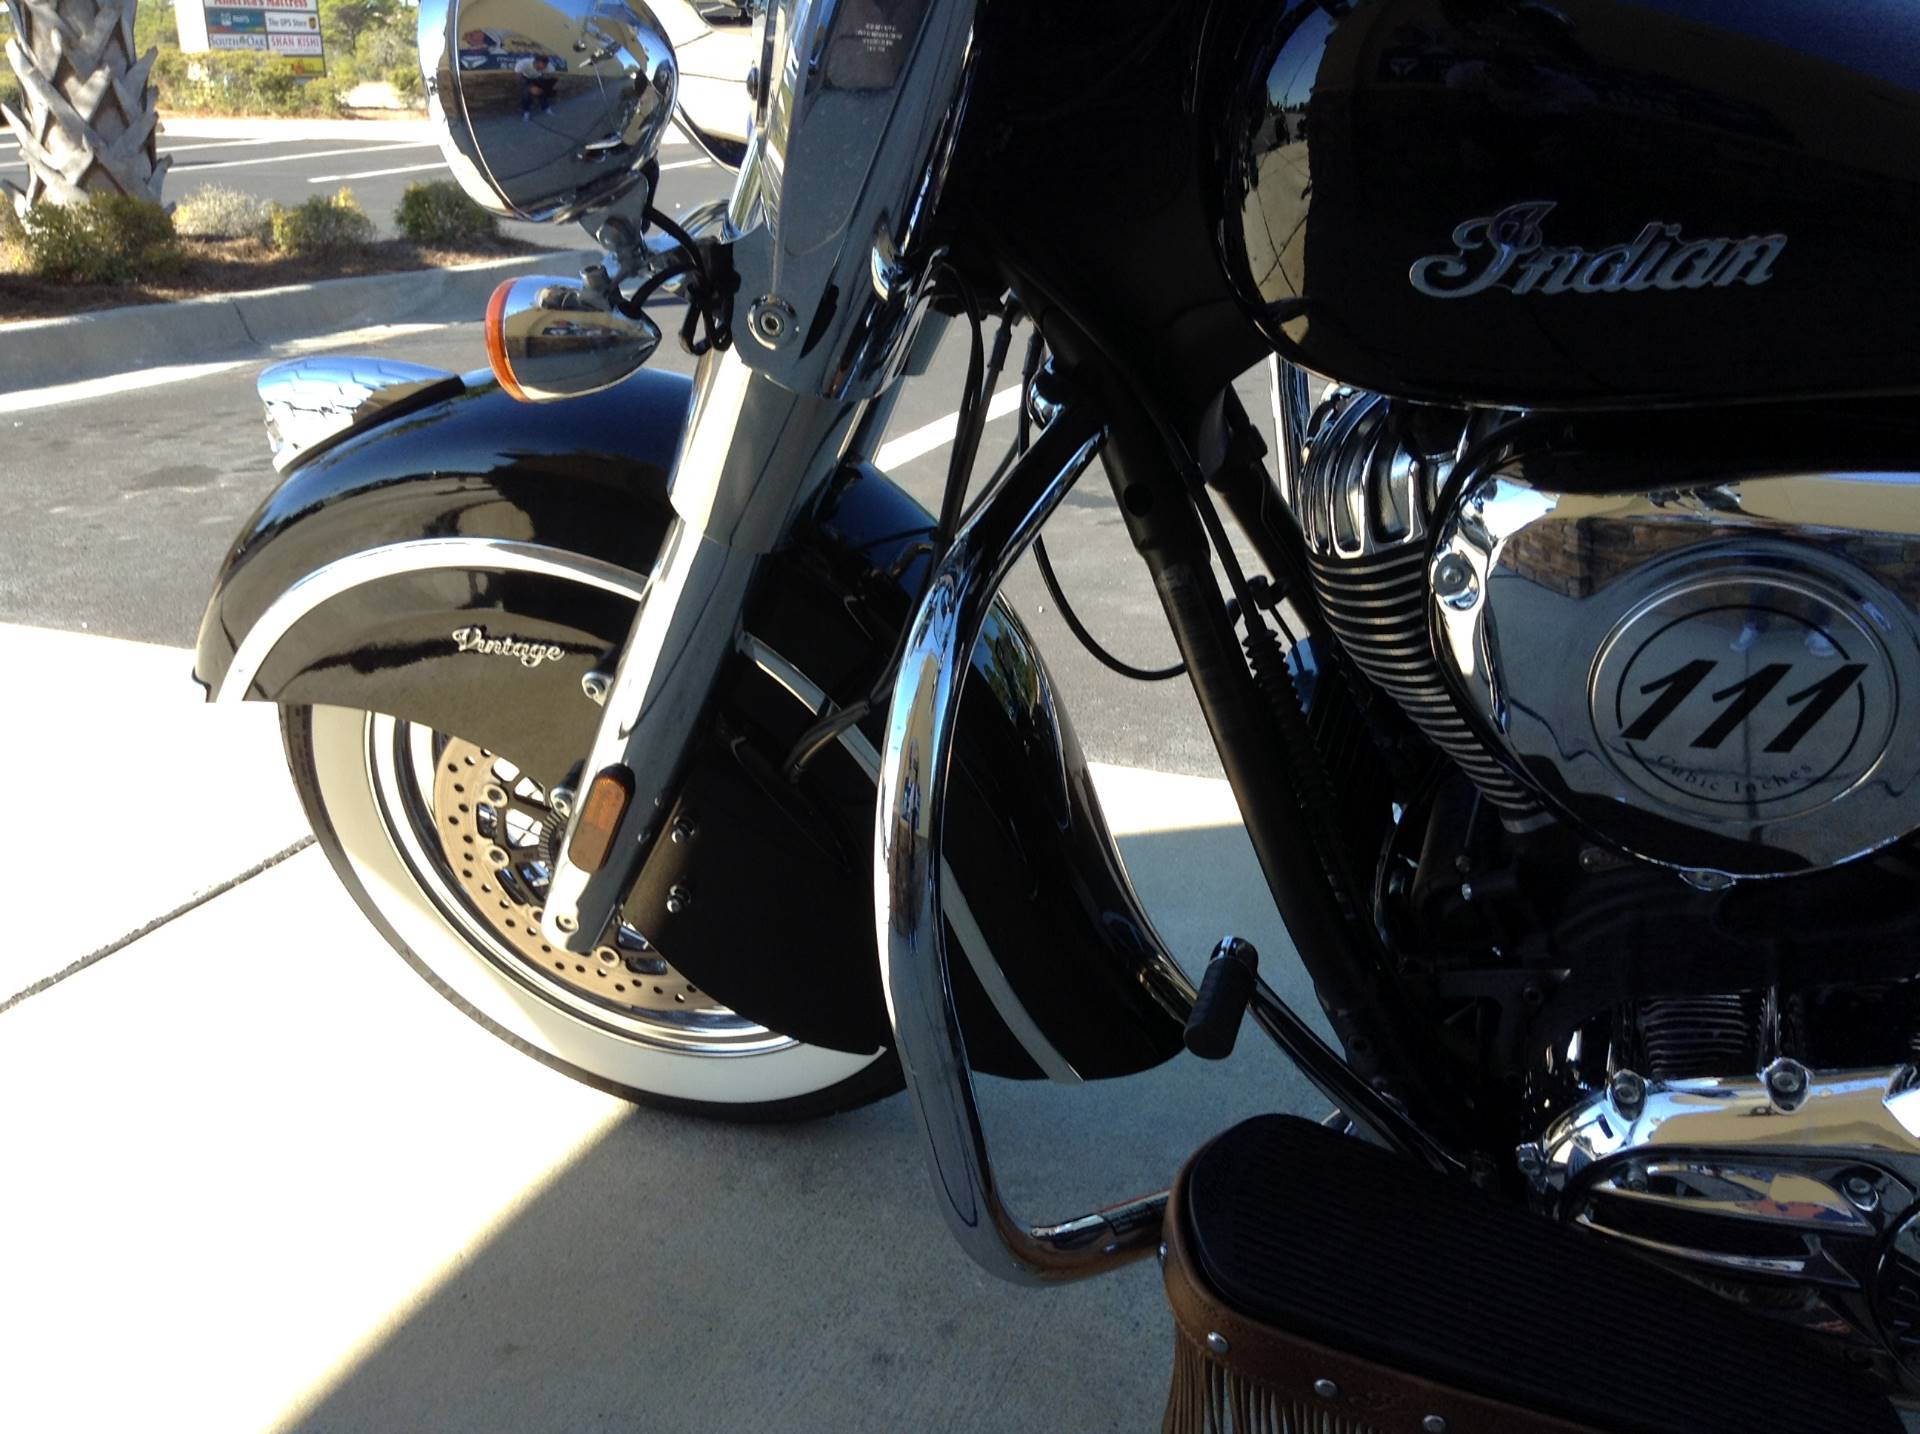 2014 Indian VINTAGE in Panama City Beach, Florida